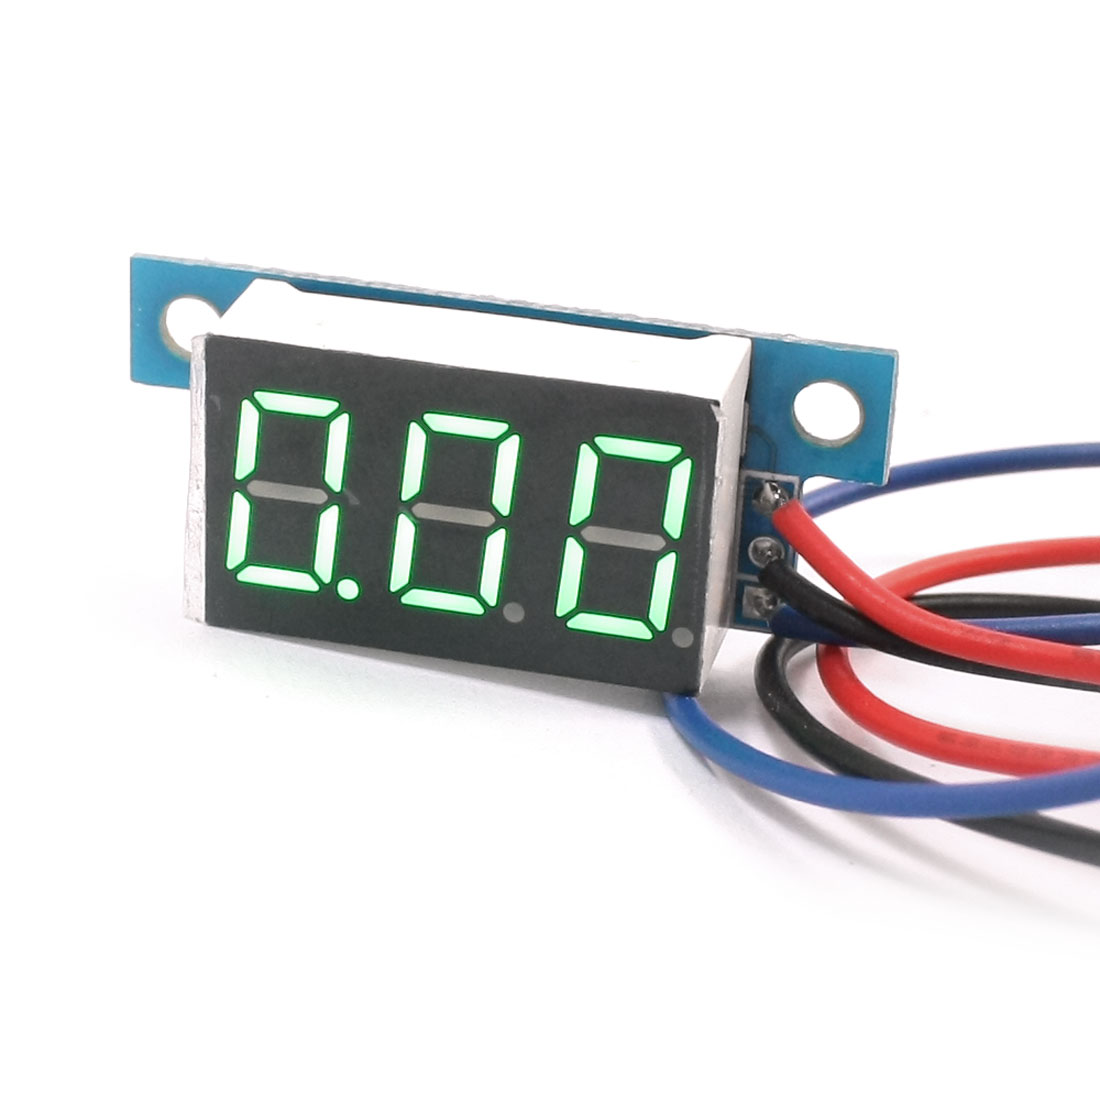 Digital DC 0-10V LED Display Green Digit Voltage Tester Gauge Panel Voltmeter